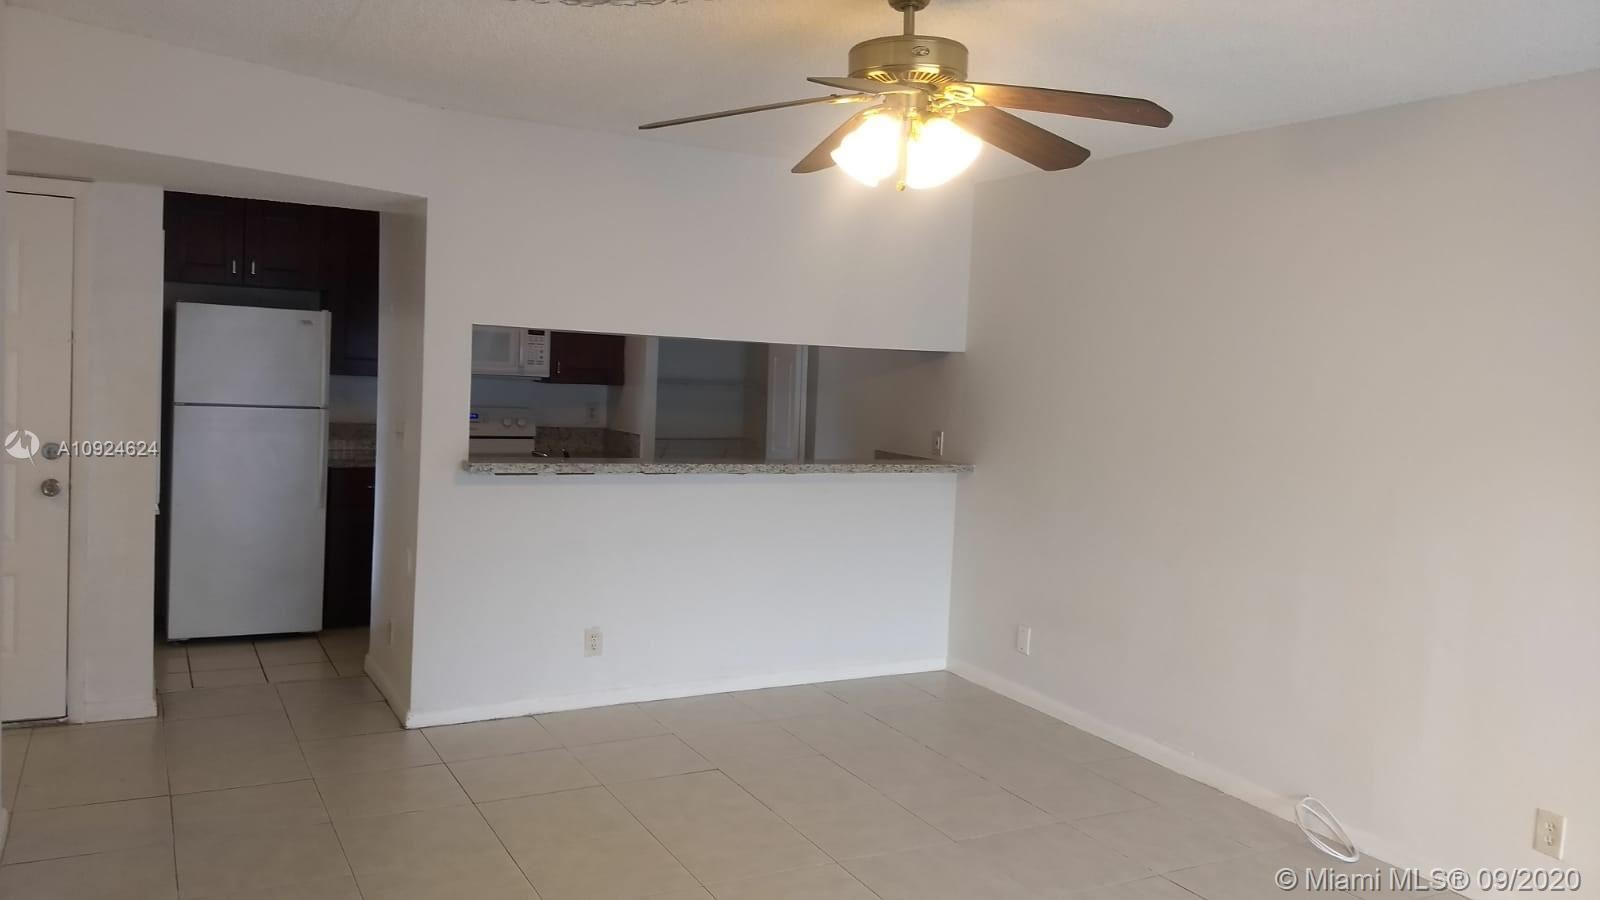 11570 NW 44 th ST #11570, Coral Springs, FL 33065 - #: A10924624